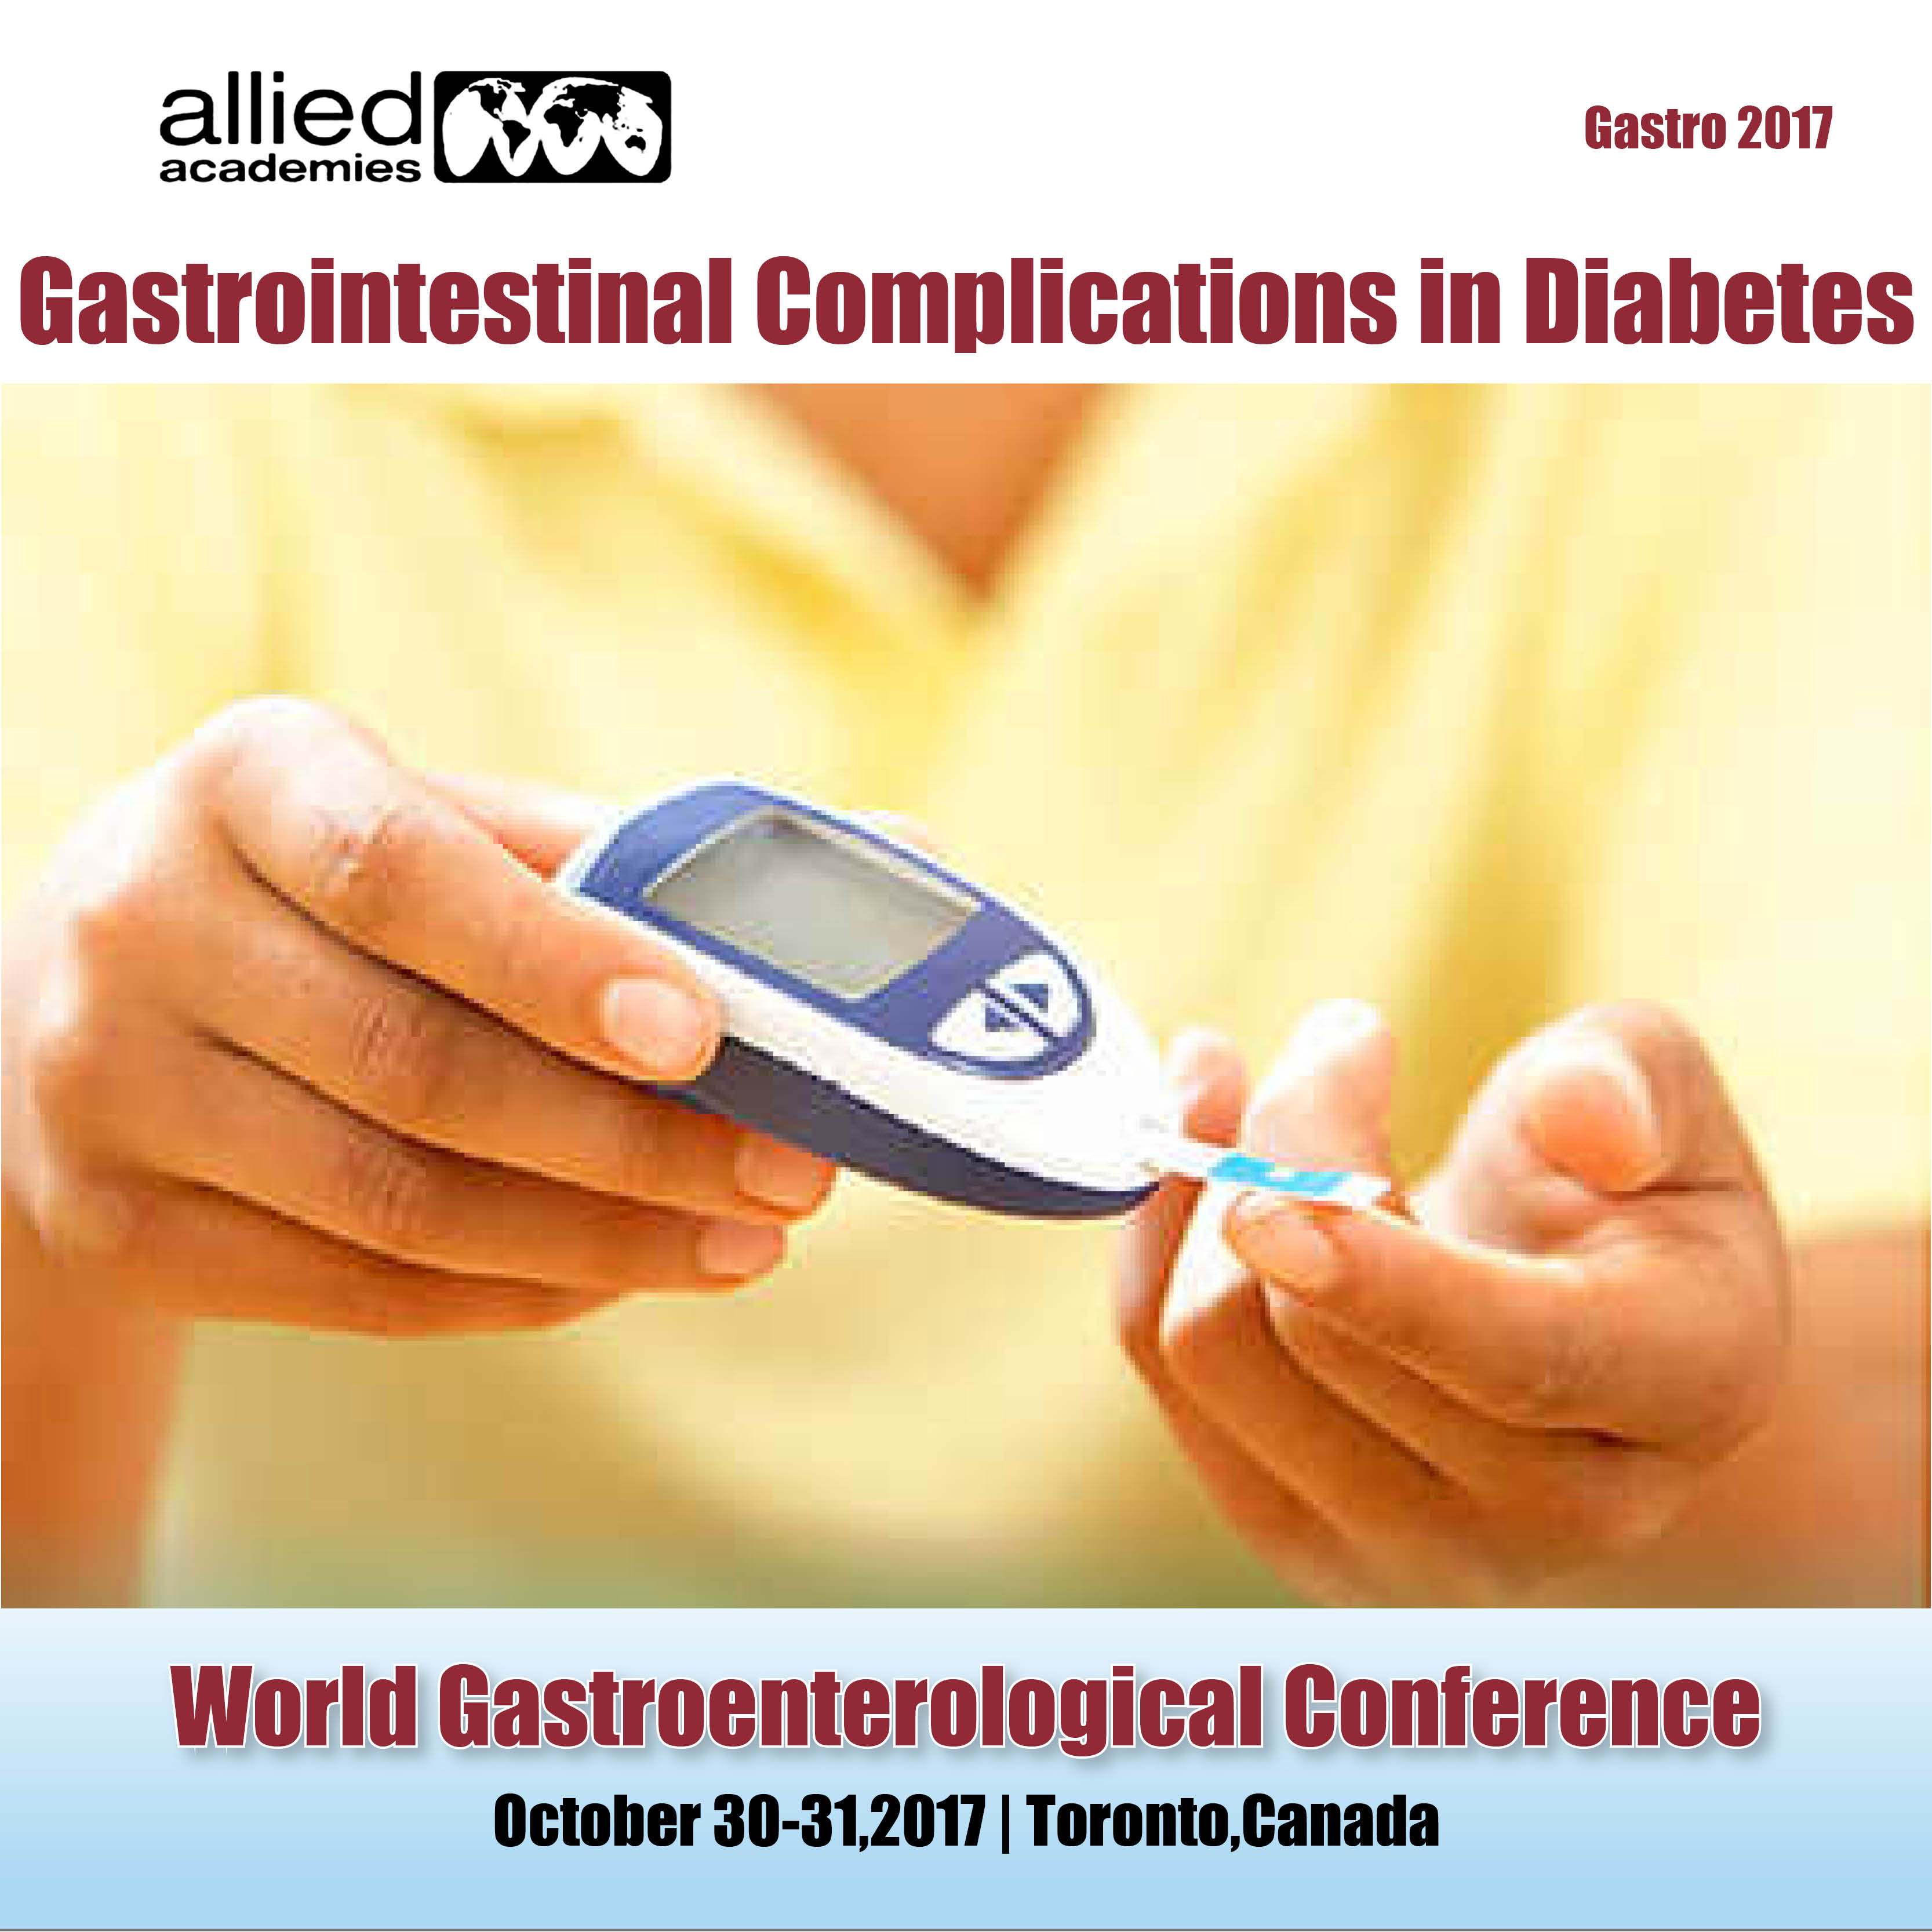 Gastrointestinal Complications in Diabetes Photo